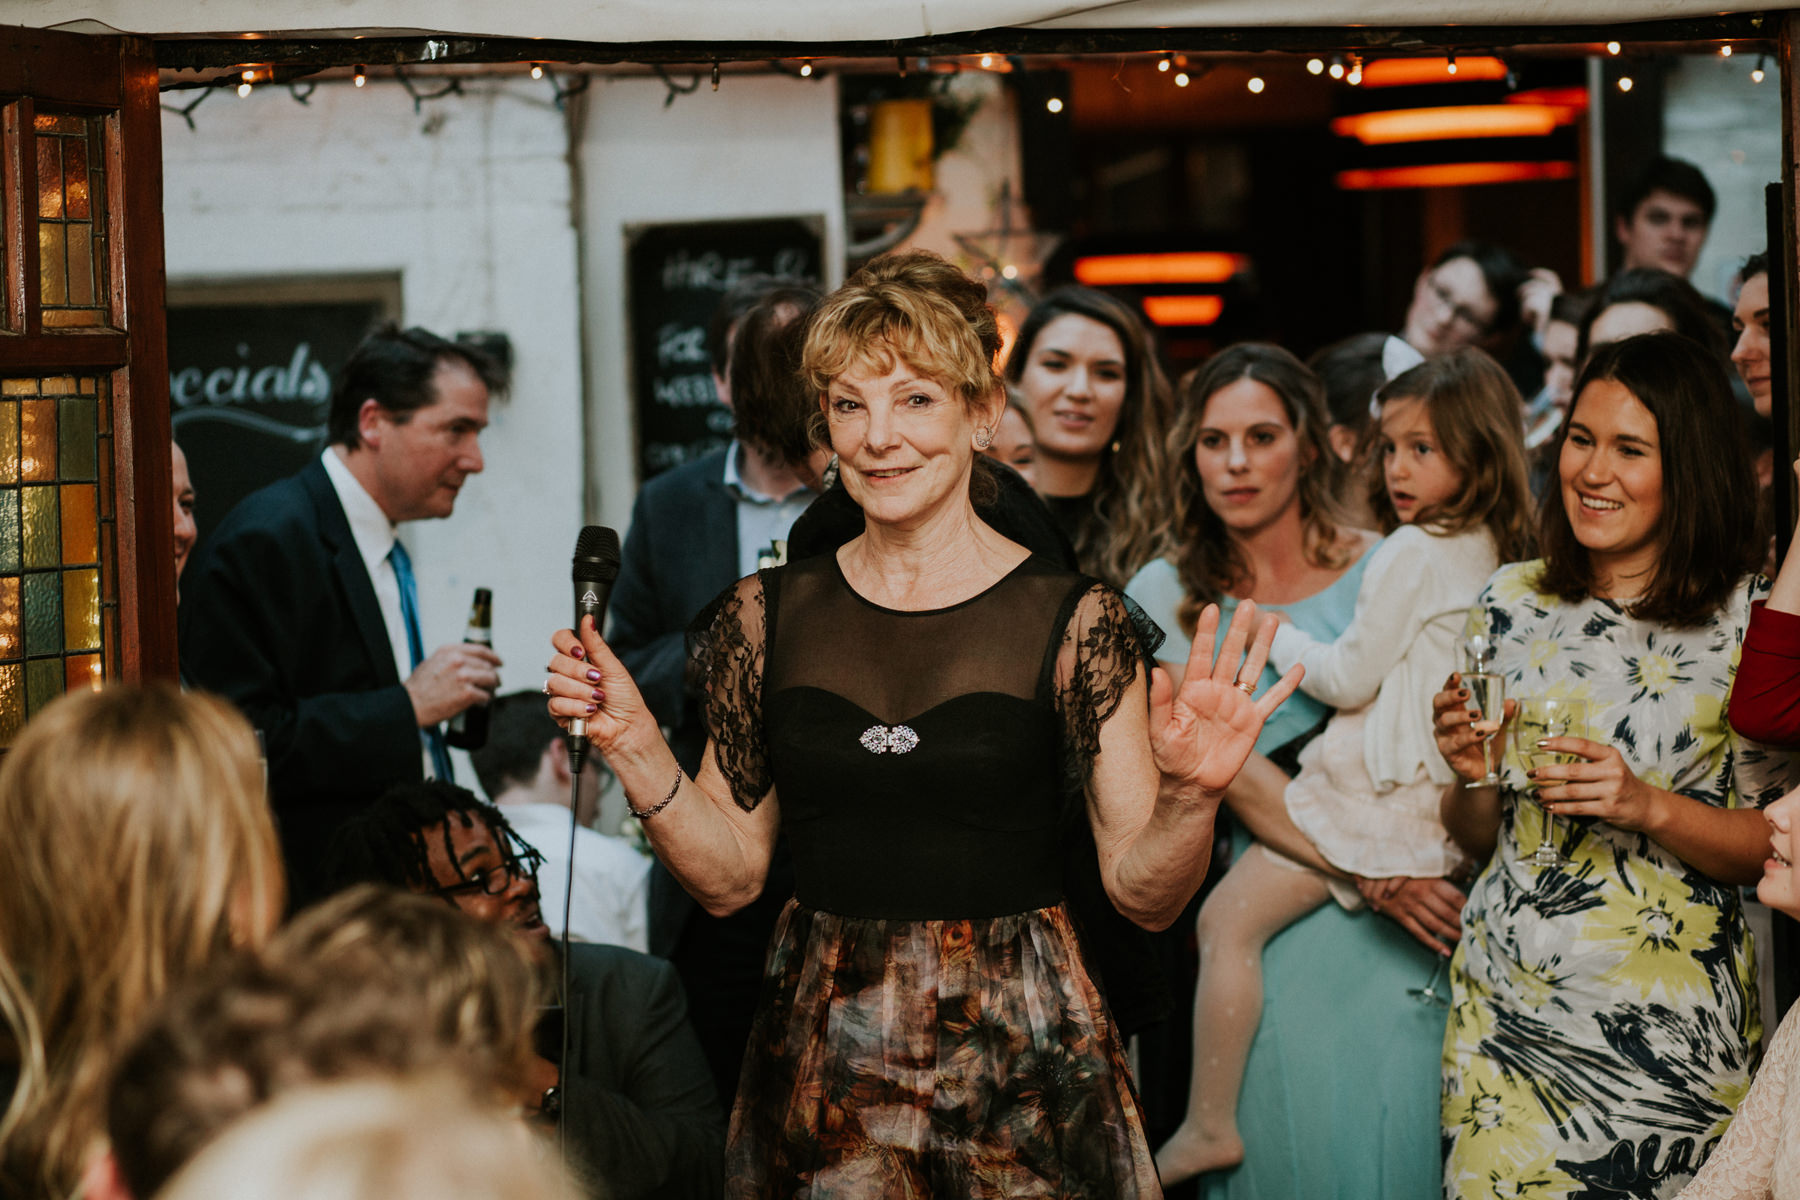 LD-717-London-reportage-photographer-Metro-Clapham-wedding-speeches.jpg